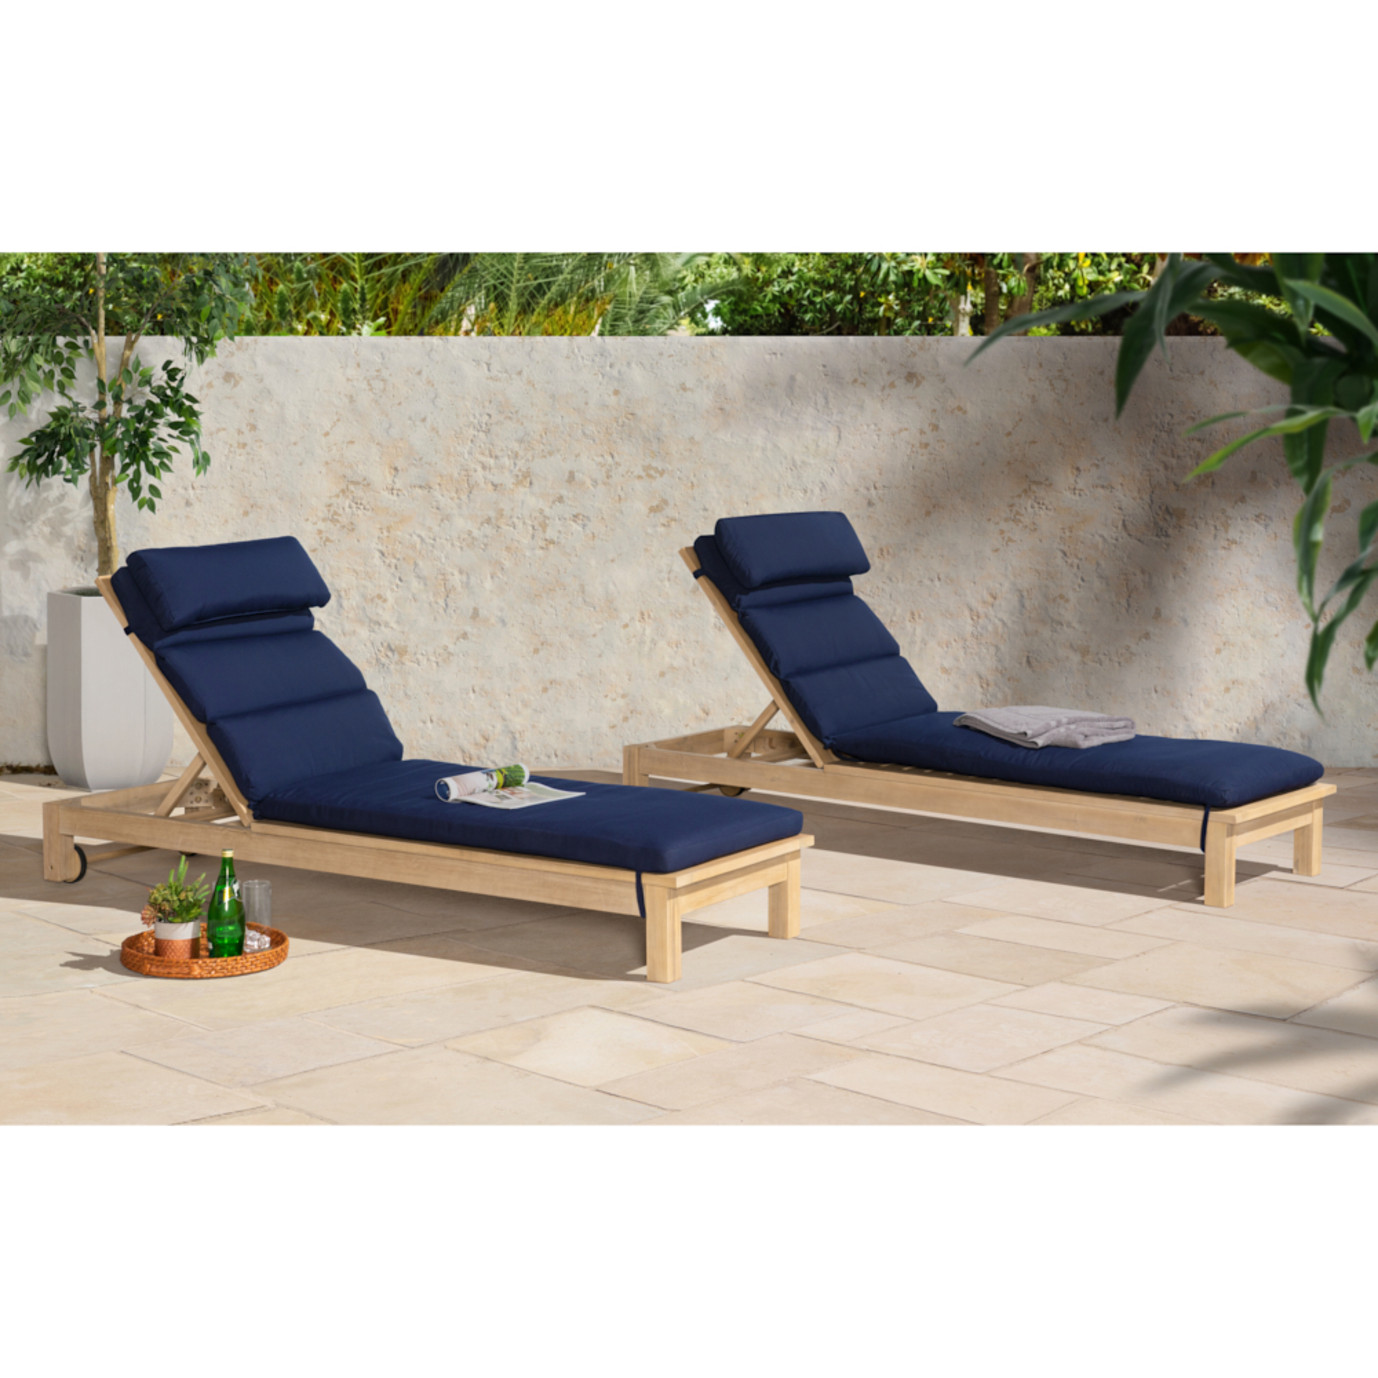 Kooper Chaise Lounges - Navy Blue